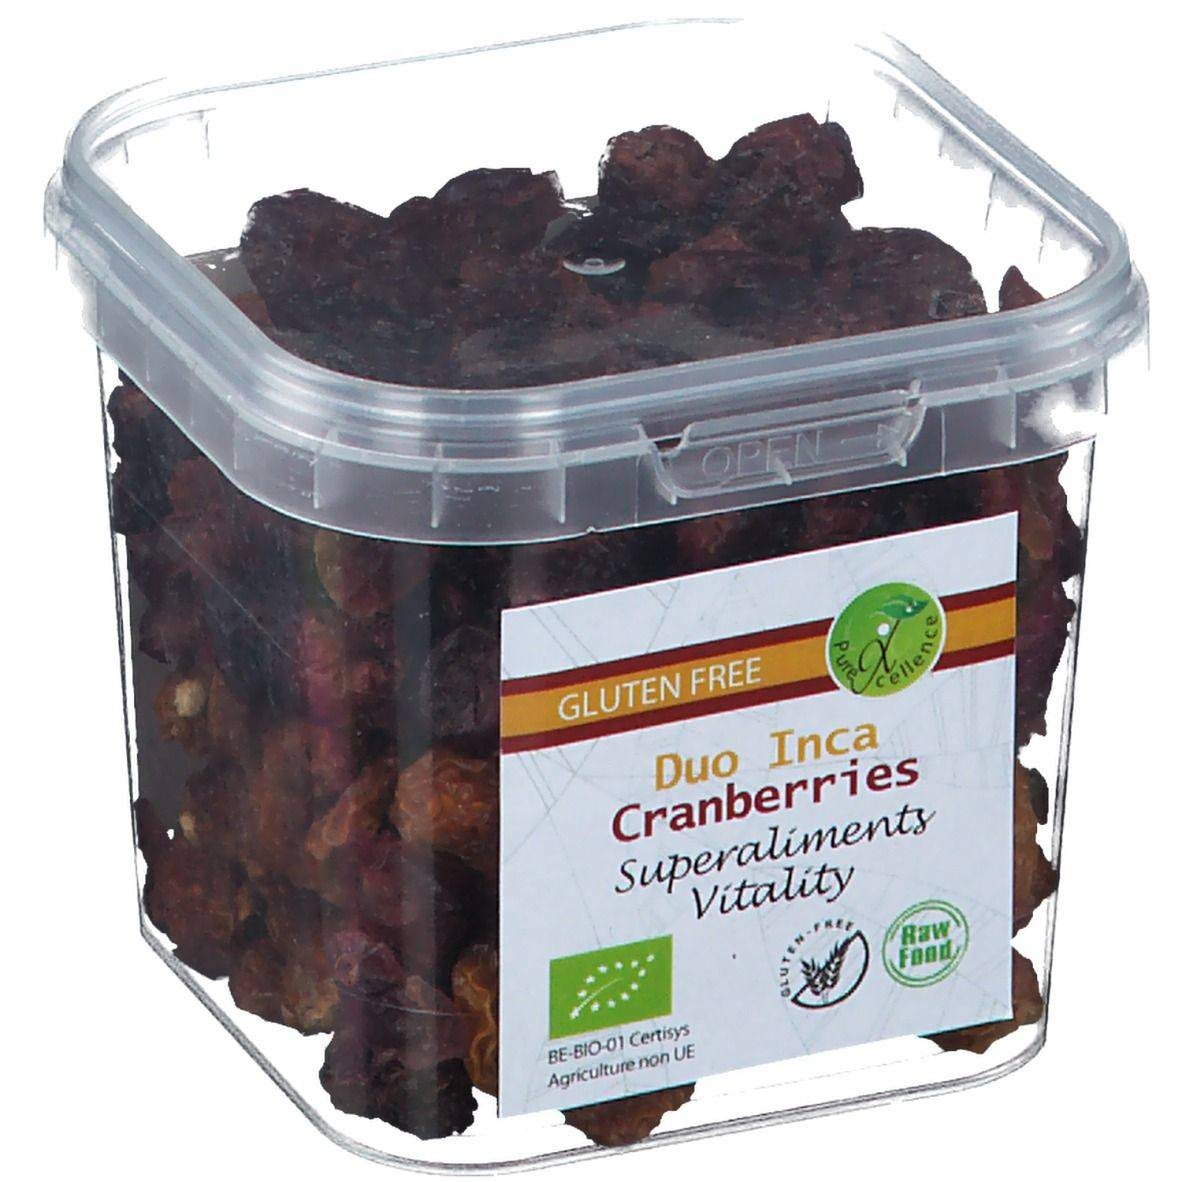 Duo Inca Super Aliments Vitality Canneberges Duo Inca g Fruits